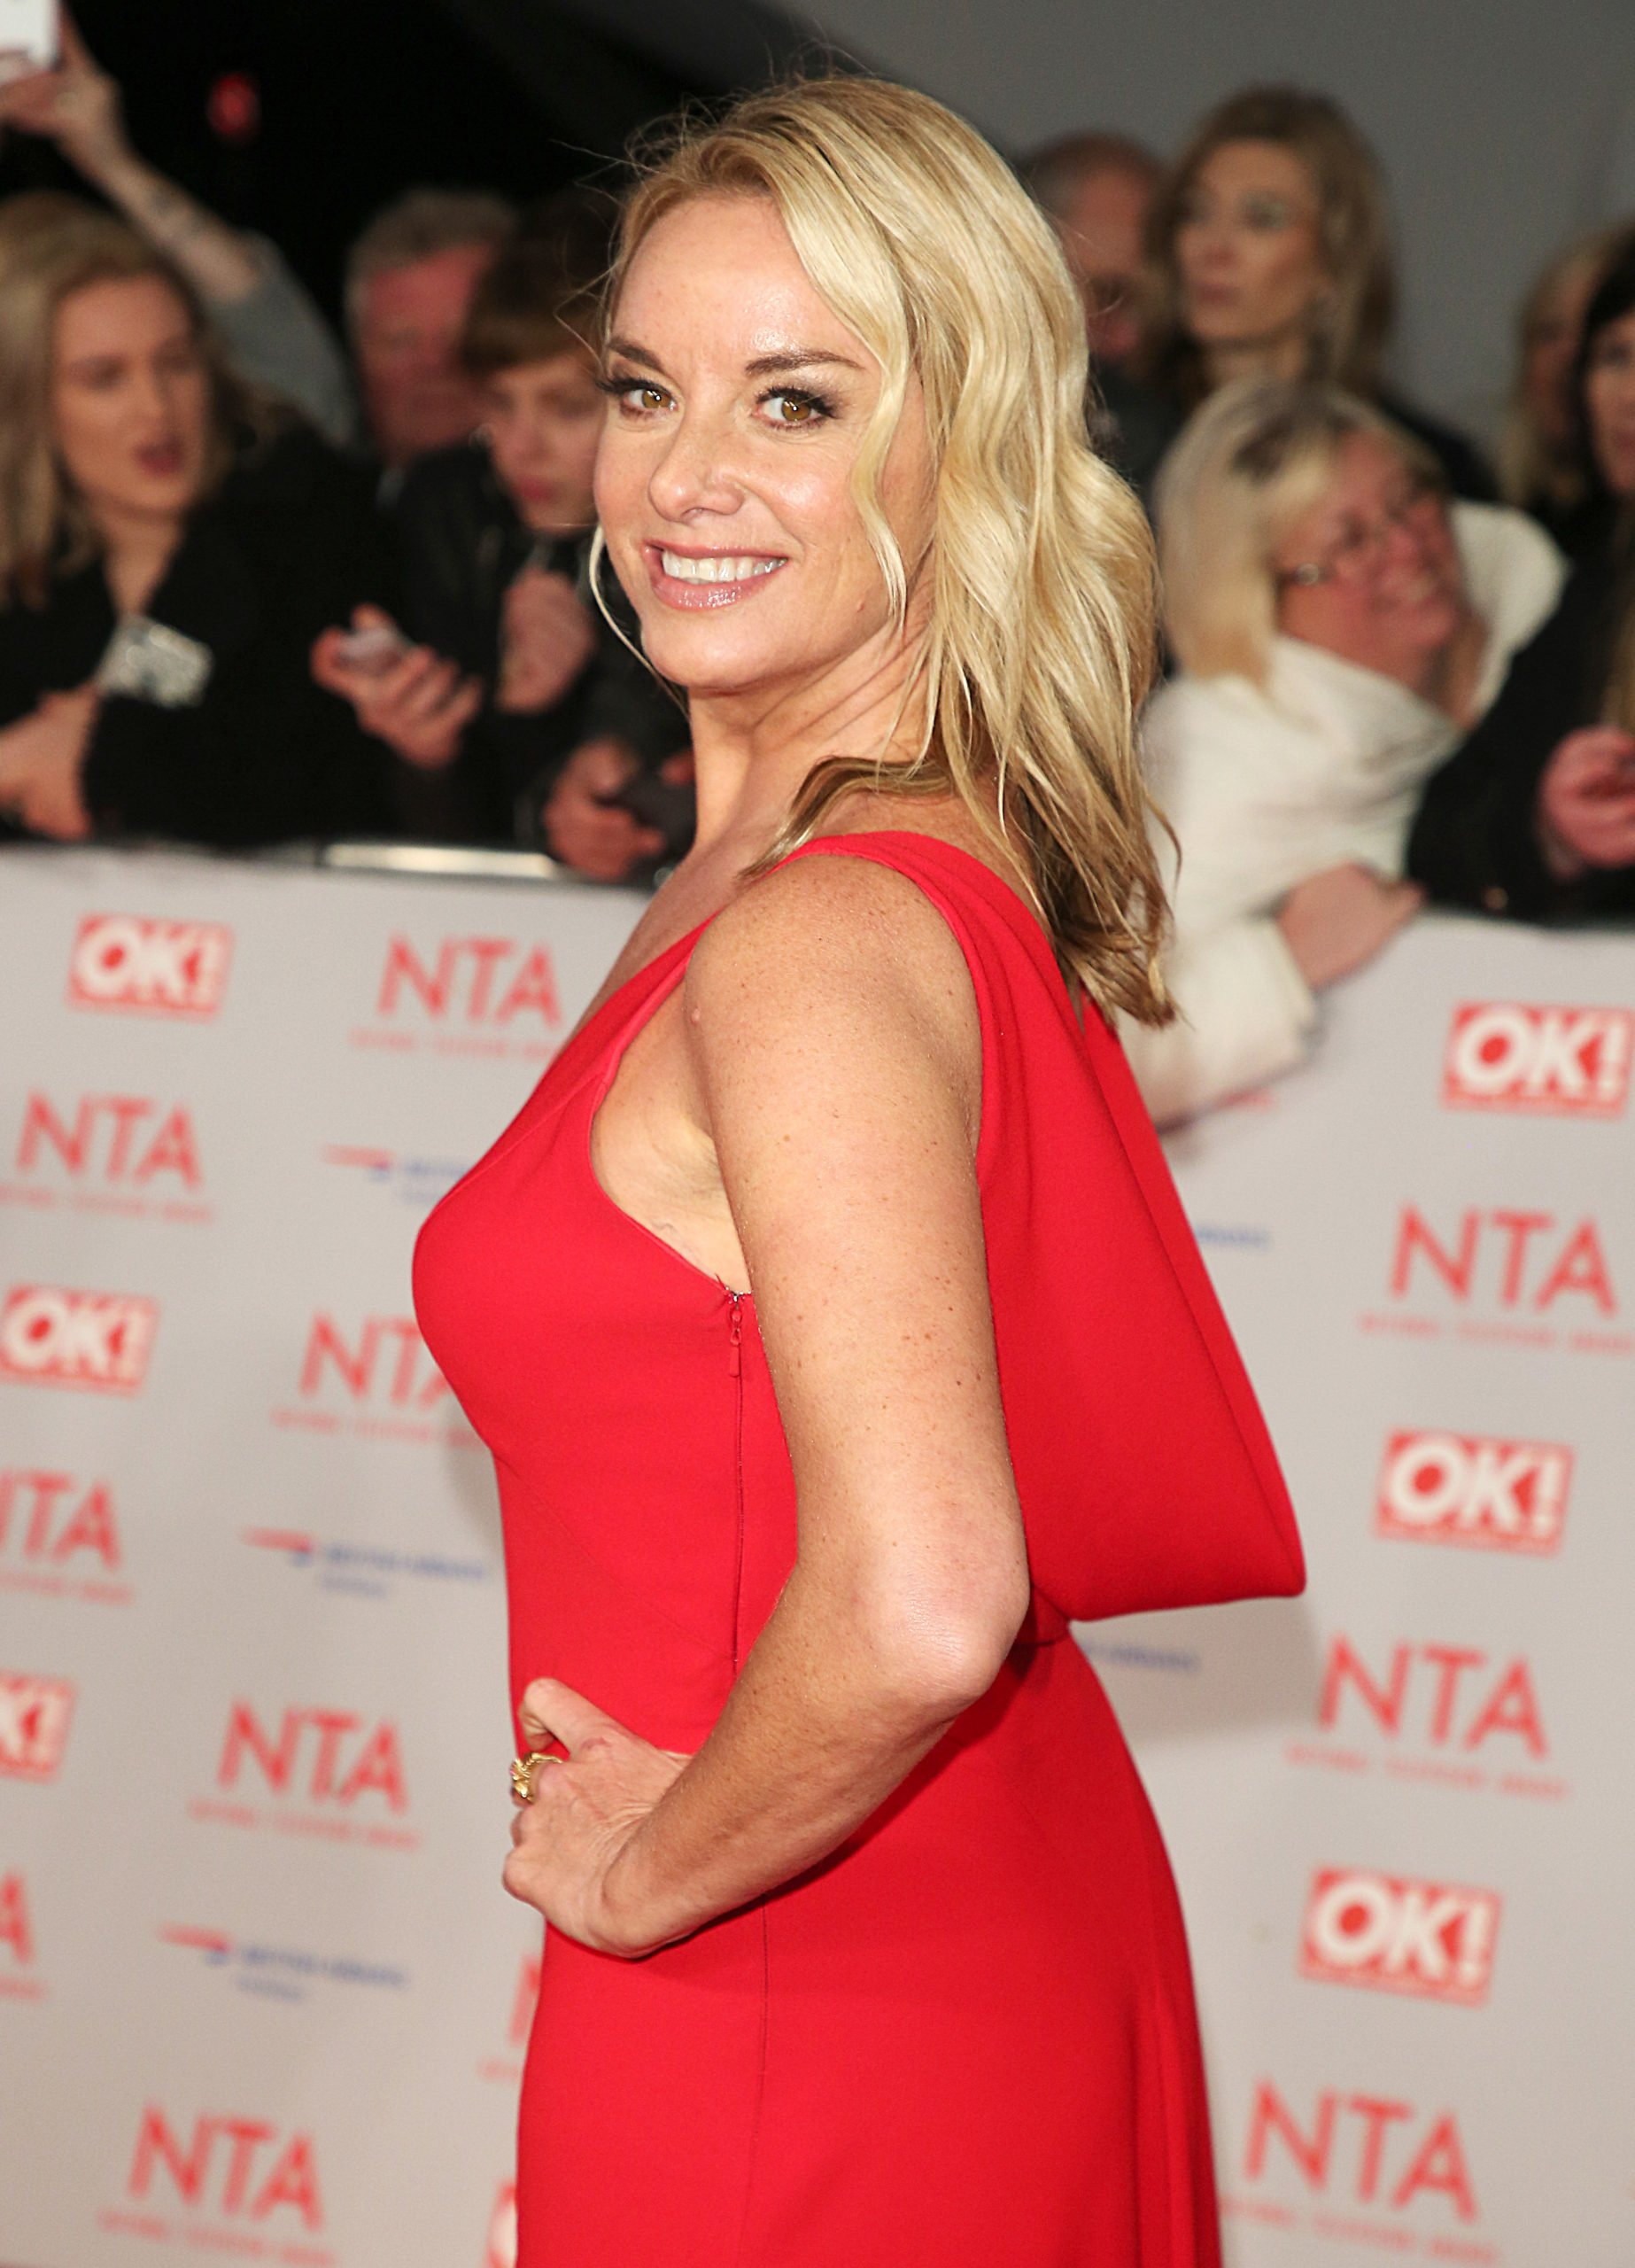 Tamzin Outhwaite strictly